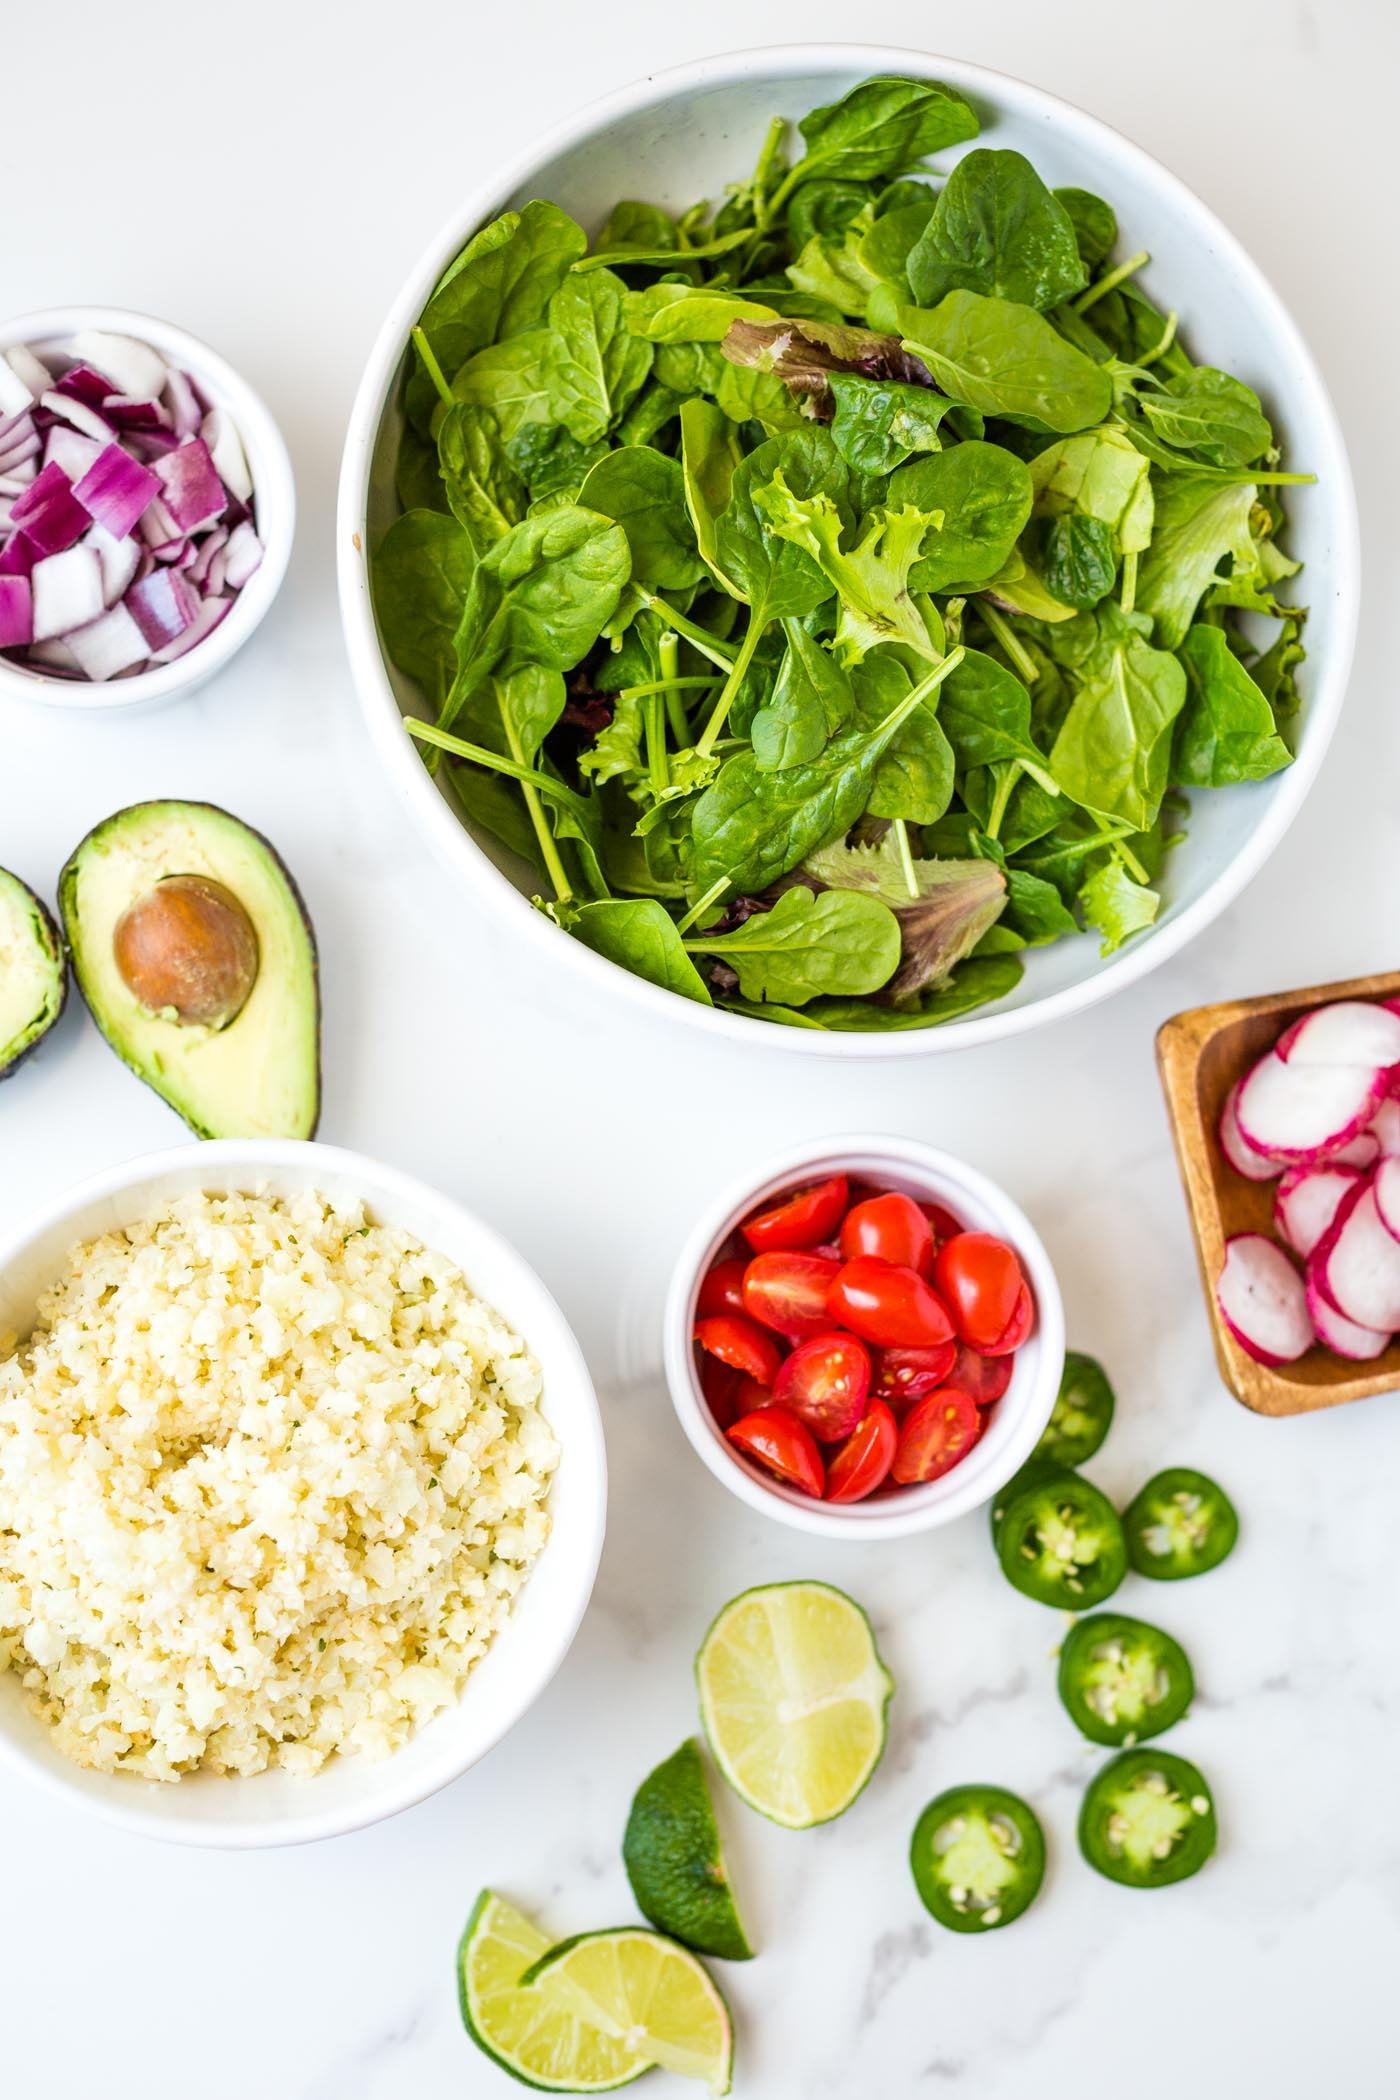 toppings including red onion, halved tomatoes, jalapenos, cauliflower rice, mixed greens, radishes, limes and halved avocados on white background